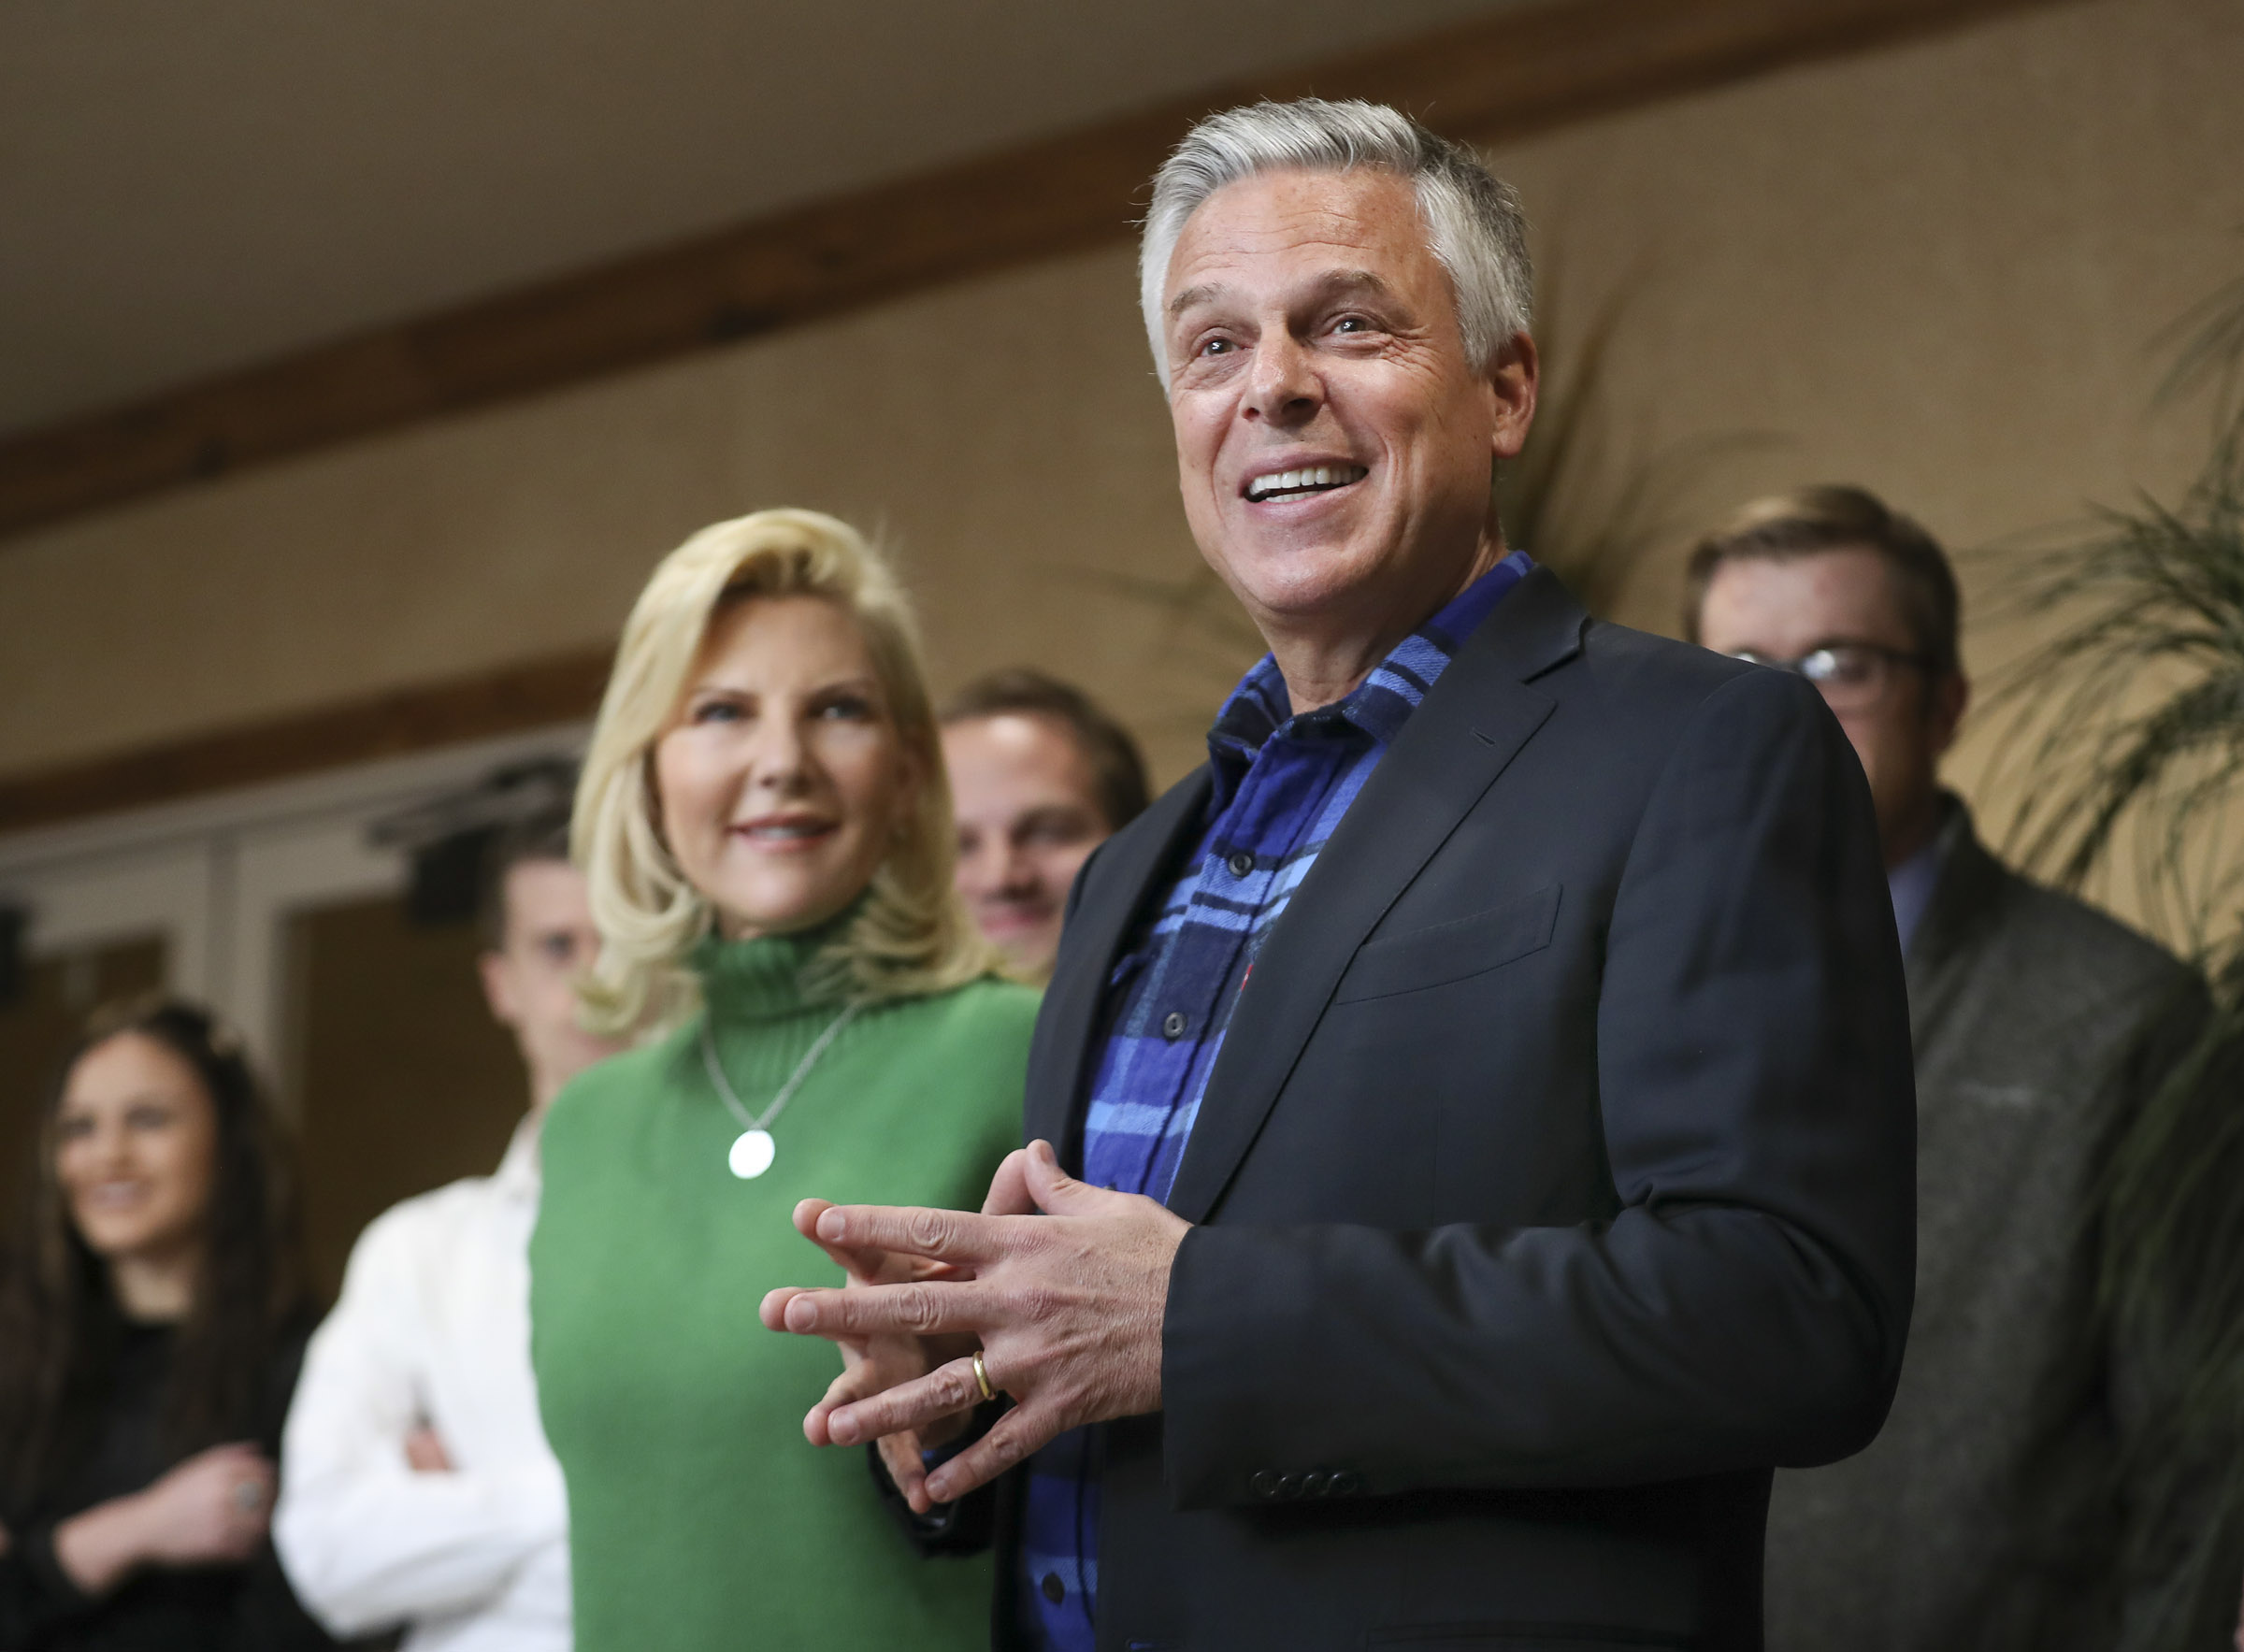 Jon Huntsman Jr. and his wife, Mary Kaye, talk with employees and clients at KKOS Lawyers and K&E CPAs in their offices in Cedar City shortly after announcing he is running for a third term as Utah's governor on Thursday, Nov. 14, 2019.